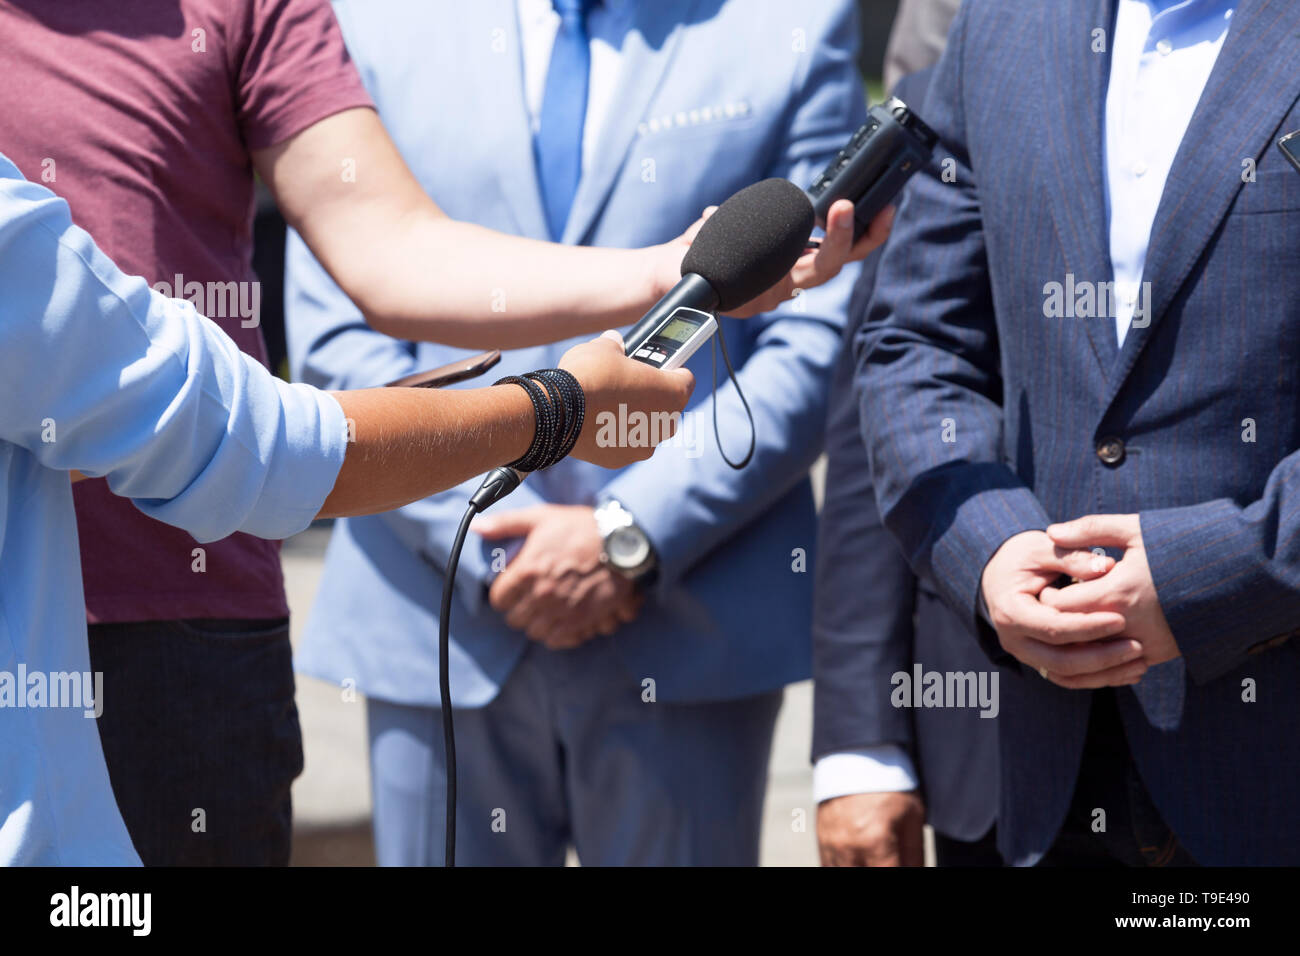 Journalists making media interview with unrecognizable business person or politician - Stock Image